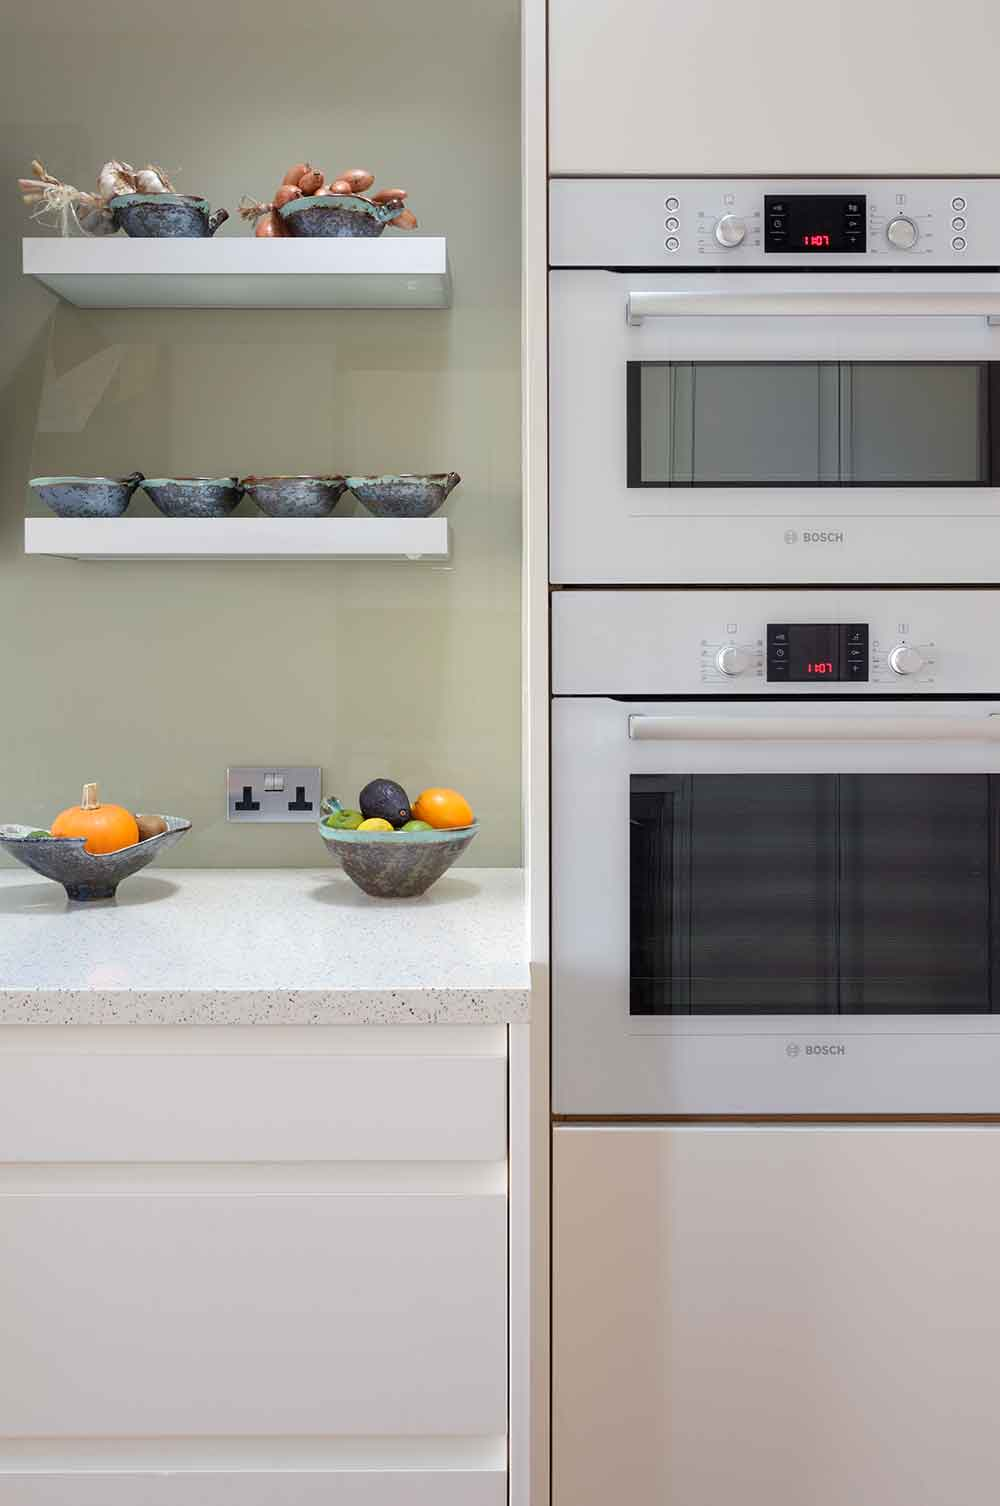 Modern compact bespoke kitchen twin oven - partial view